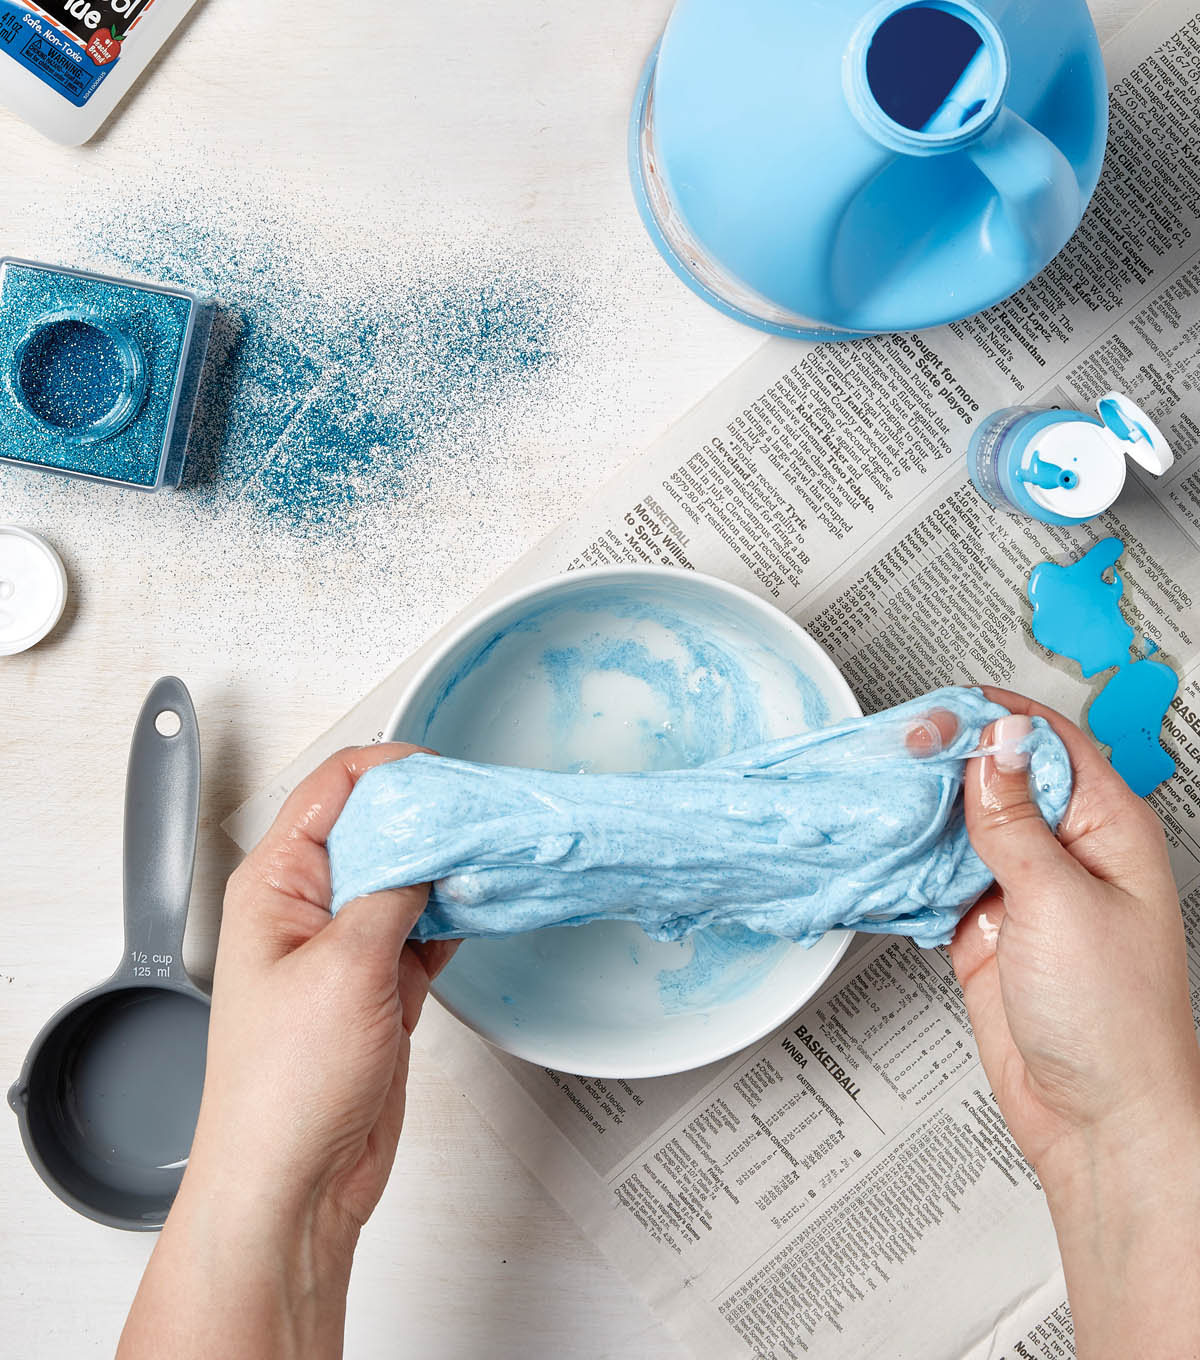 How To Make Slime with Glue & Paint | JOANN - photo#23